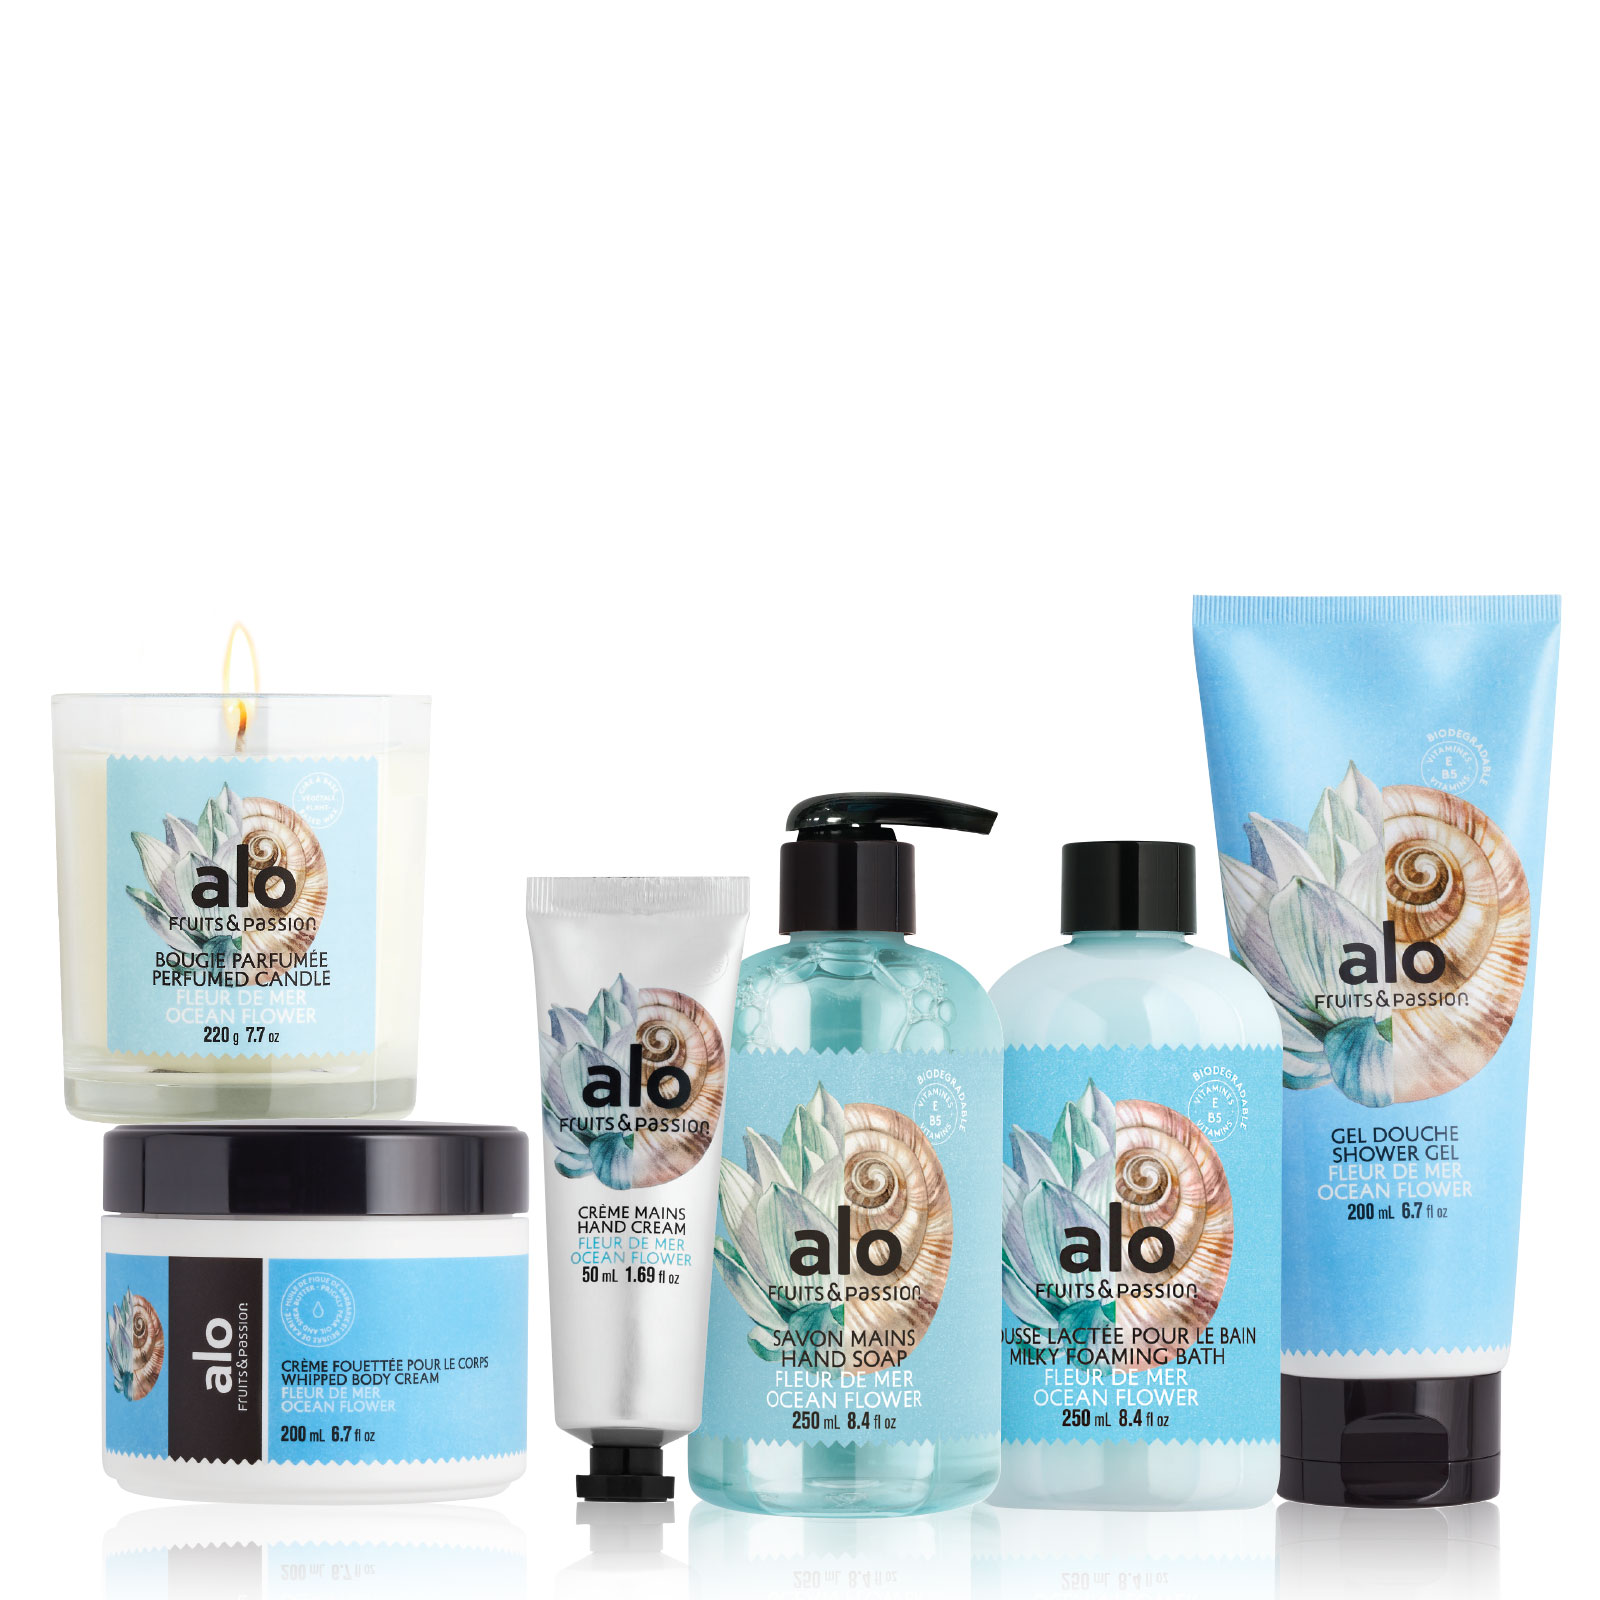 Hello Alo! Treat Mom or yourself to the Fruits & Passion's Alo Ocean Flower body care collection is like an instant vacation for the senses. Bursting with aquatic, beachy notes, these soothing products are now available.